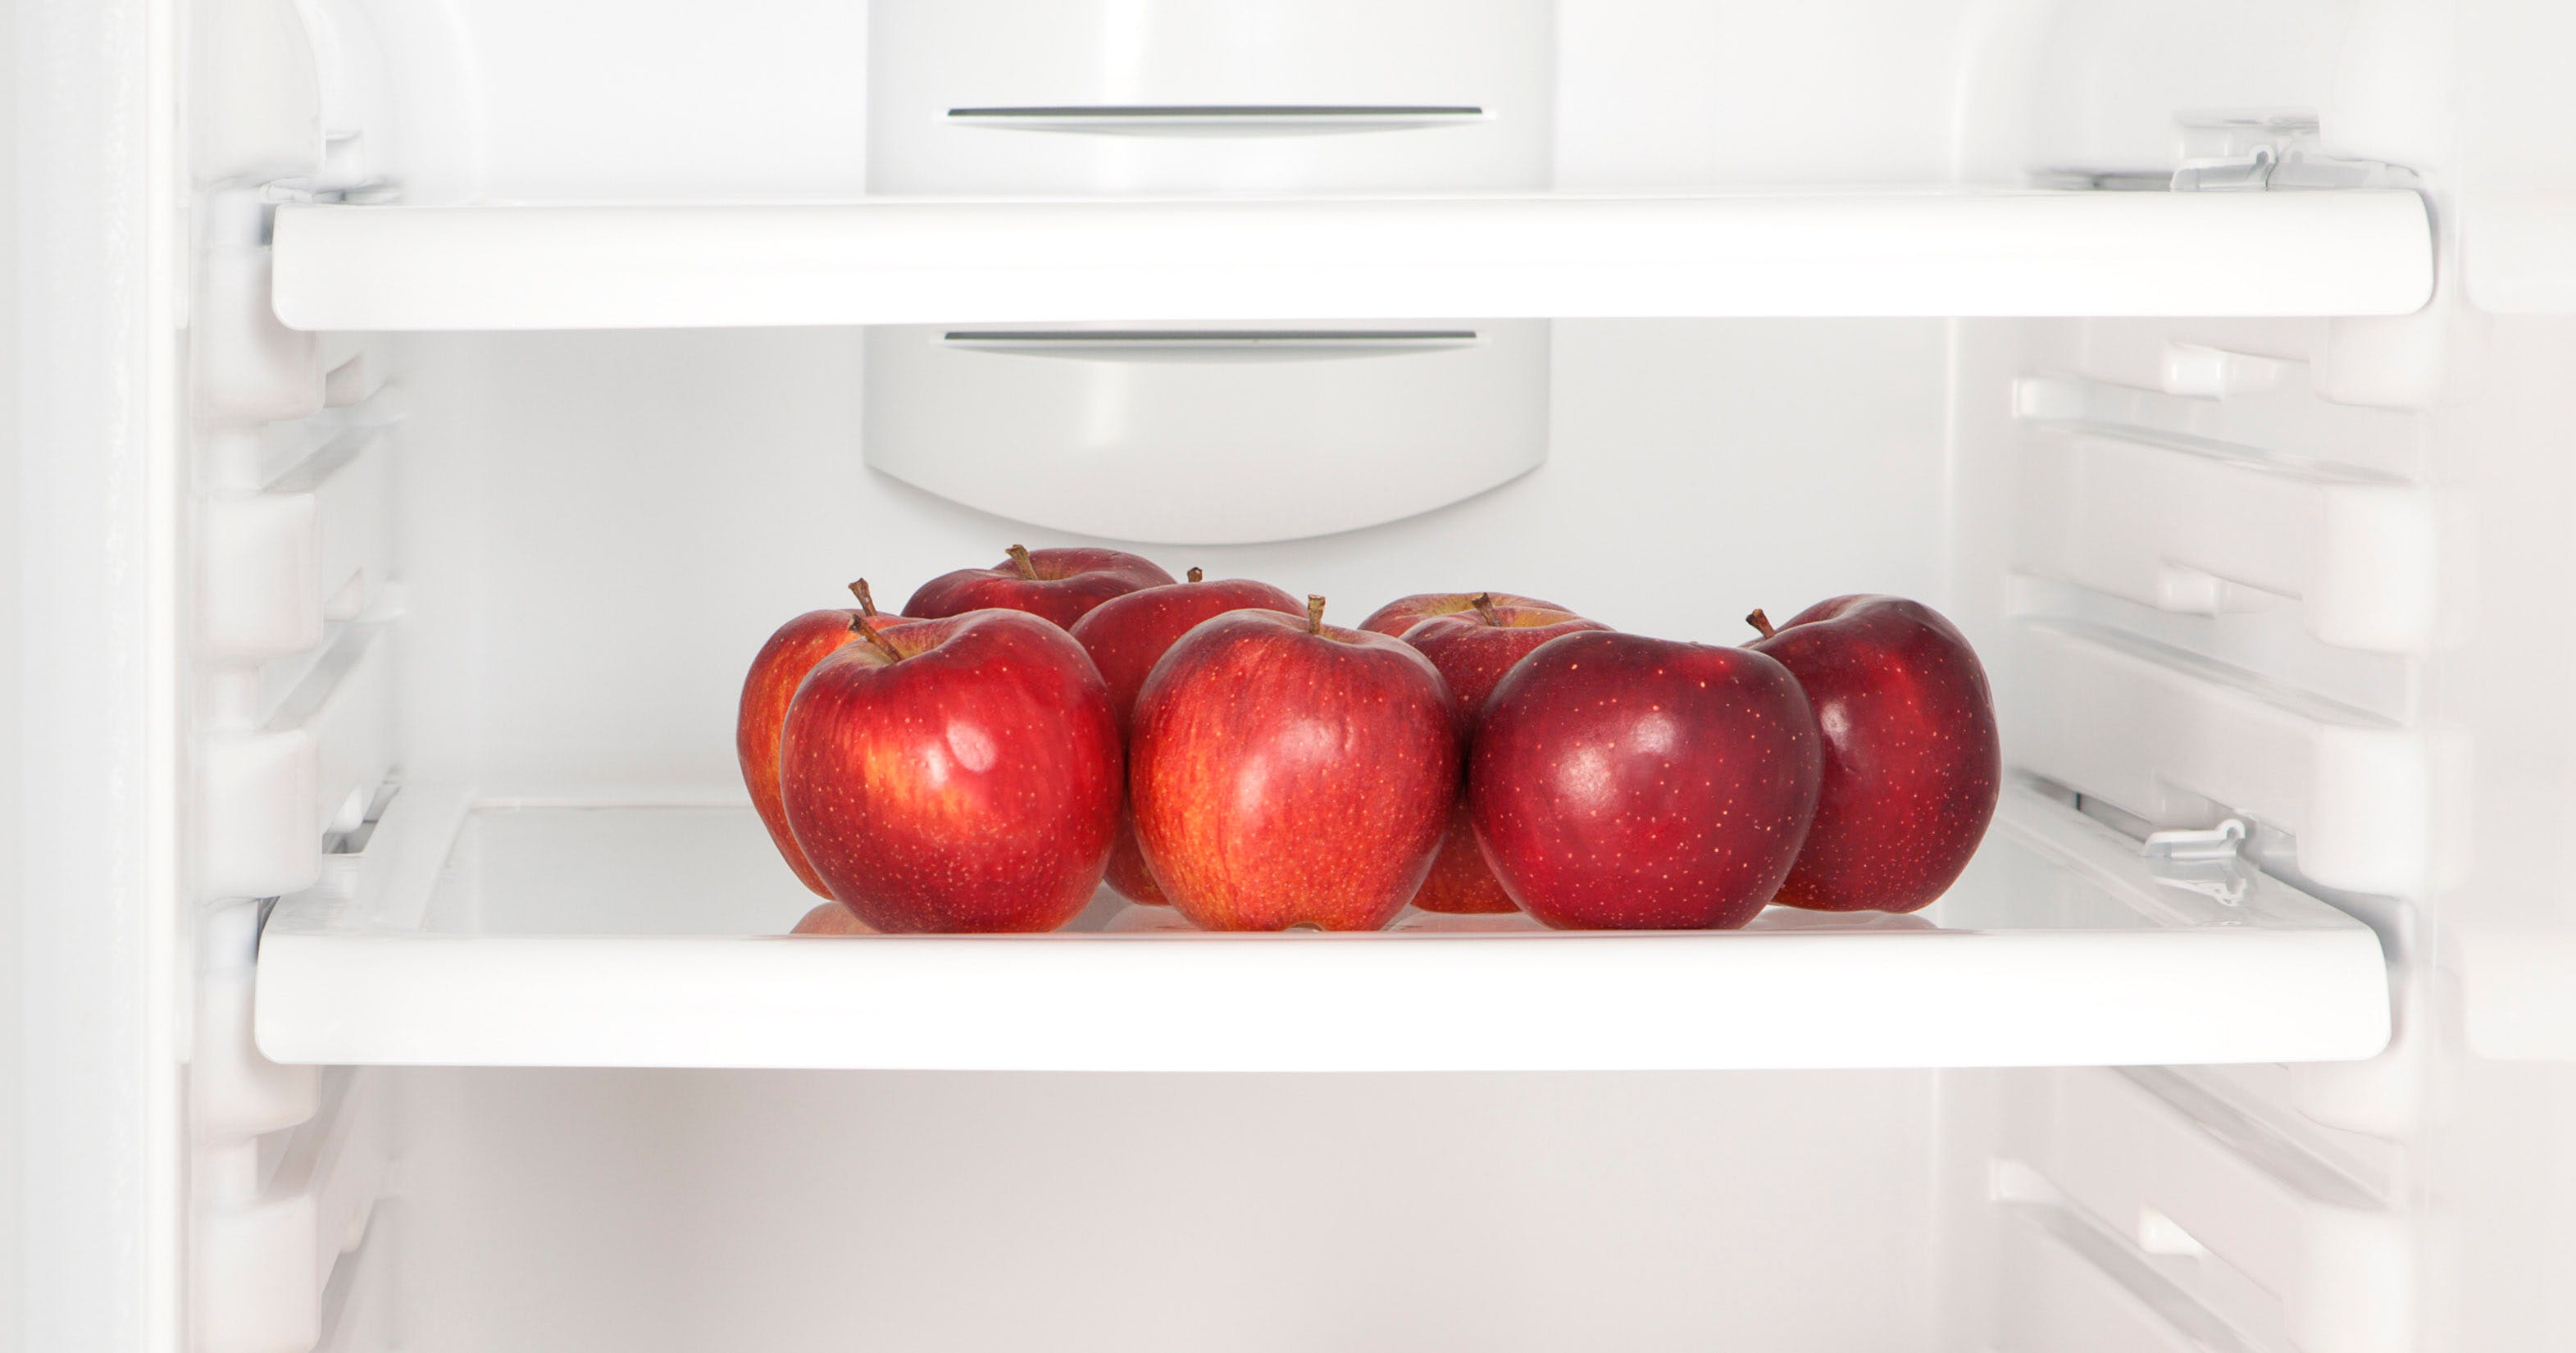 Should Apples Be Refrigerated? Hear Us Out on This One